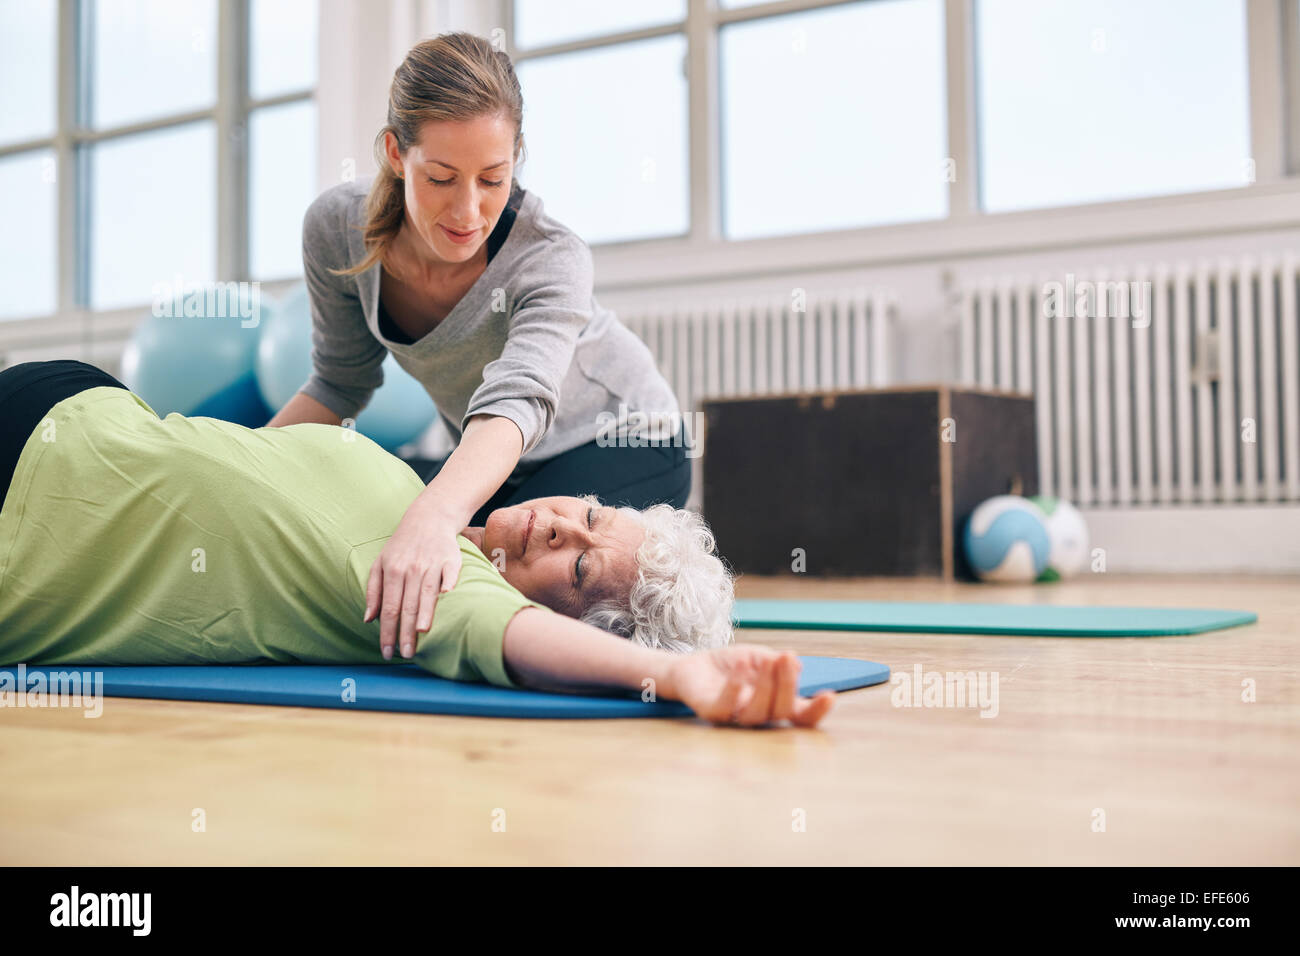 Senior women lying on exercise mat doing stretching workout for back muscles with coach assistance. Female trainer - Stock Image